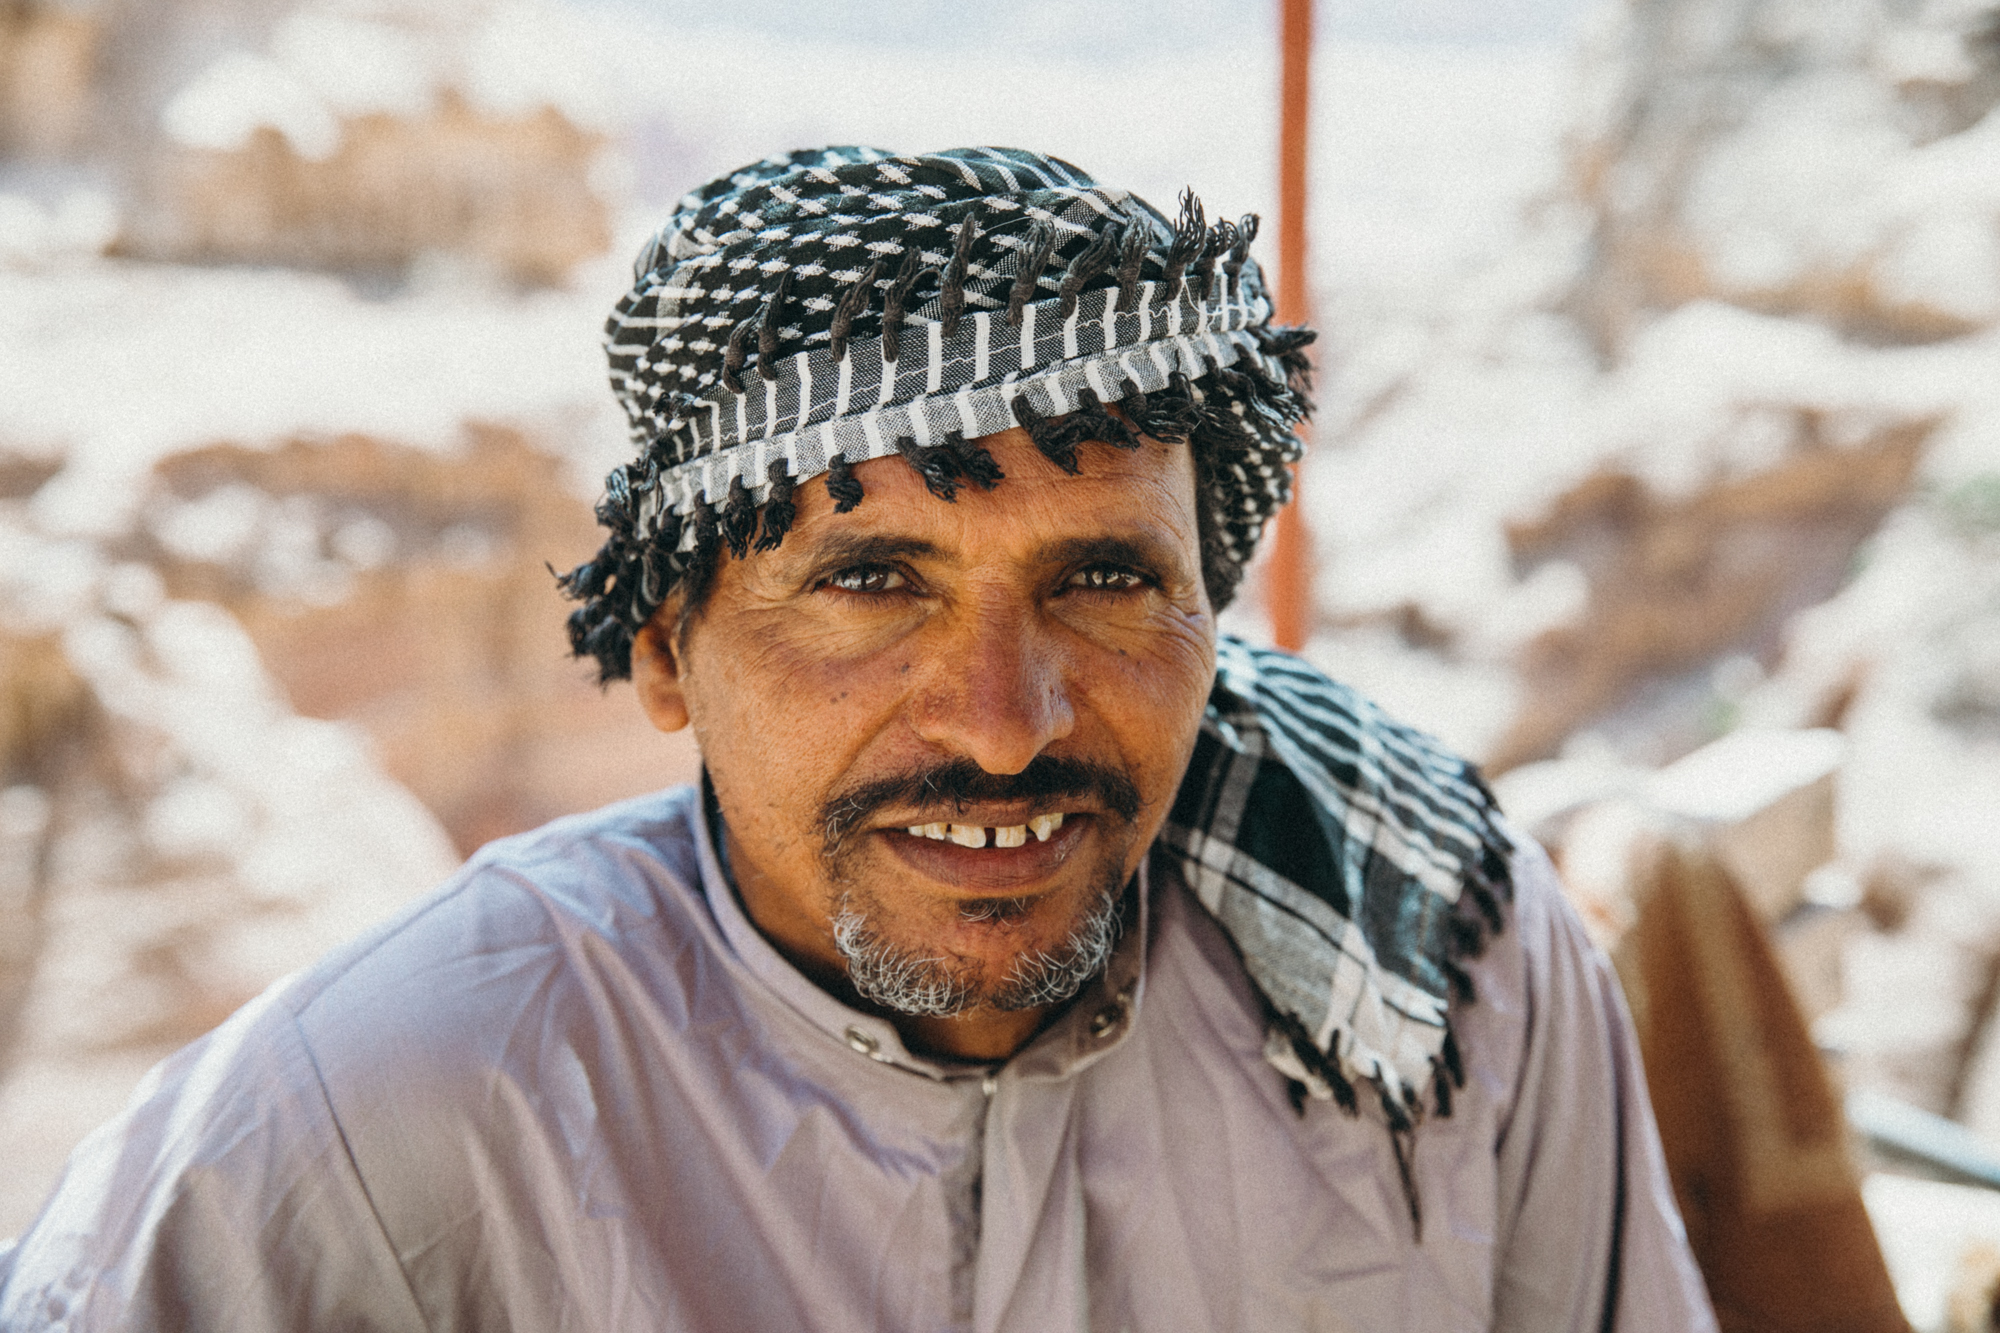 So many friendly faces everywhere. Everyone in Petra speaks pretty good English, so it was easy to make connections.